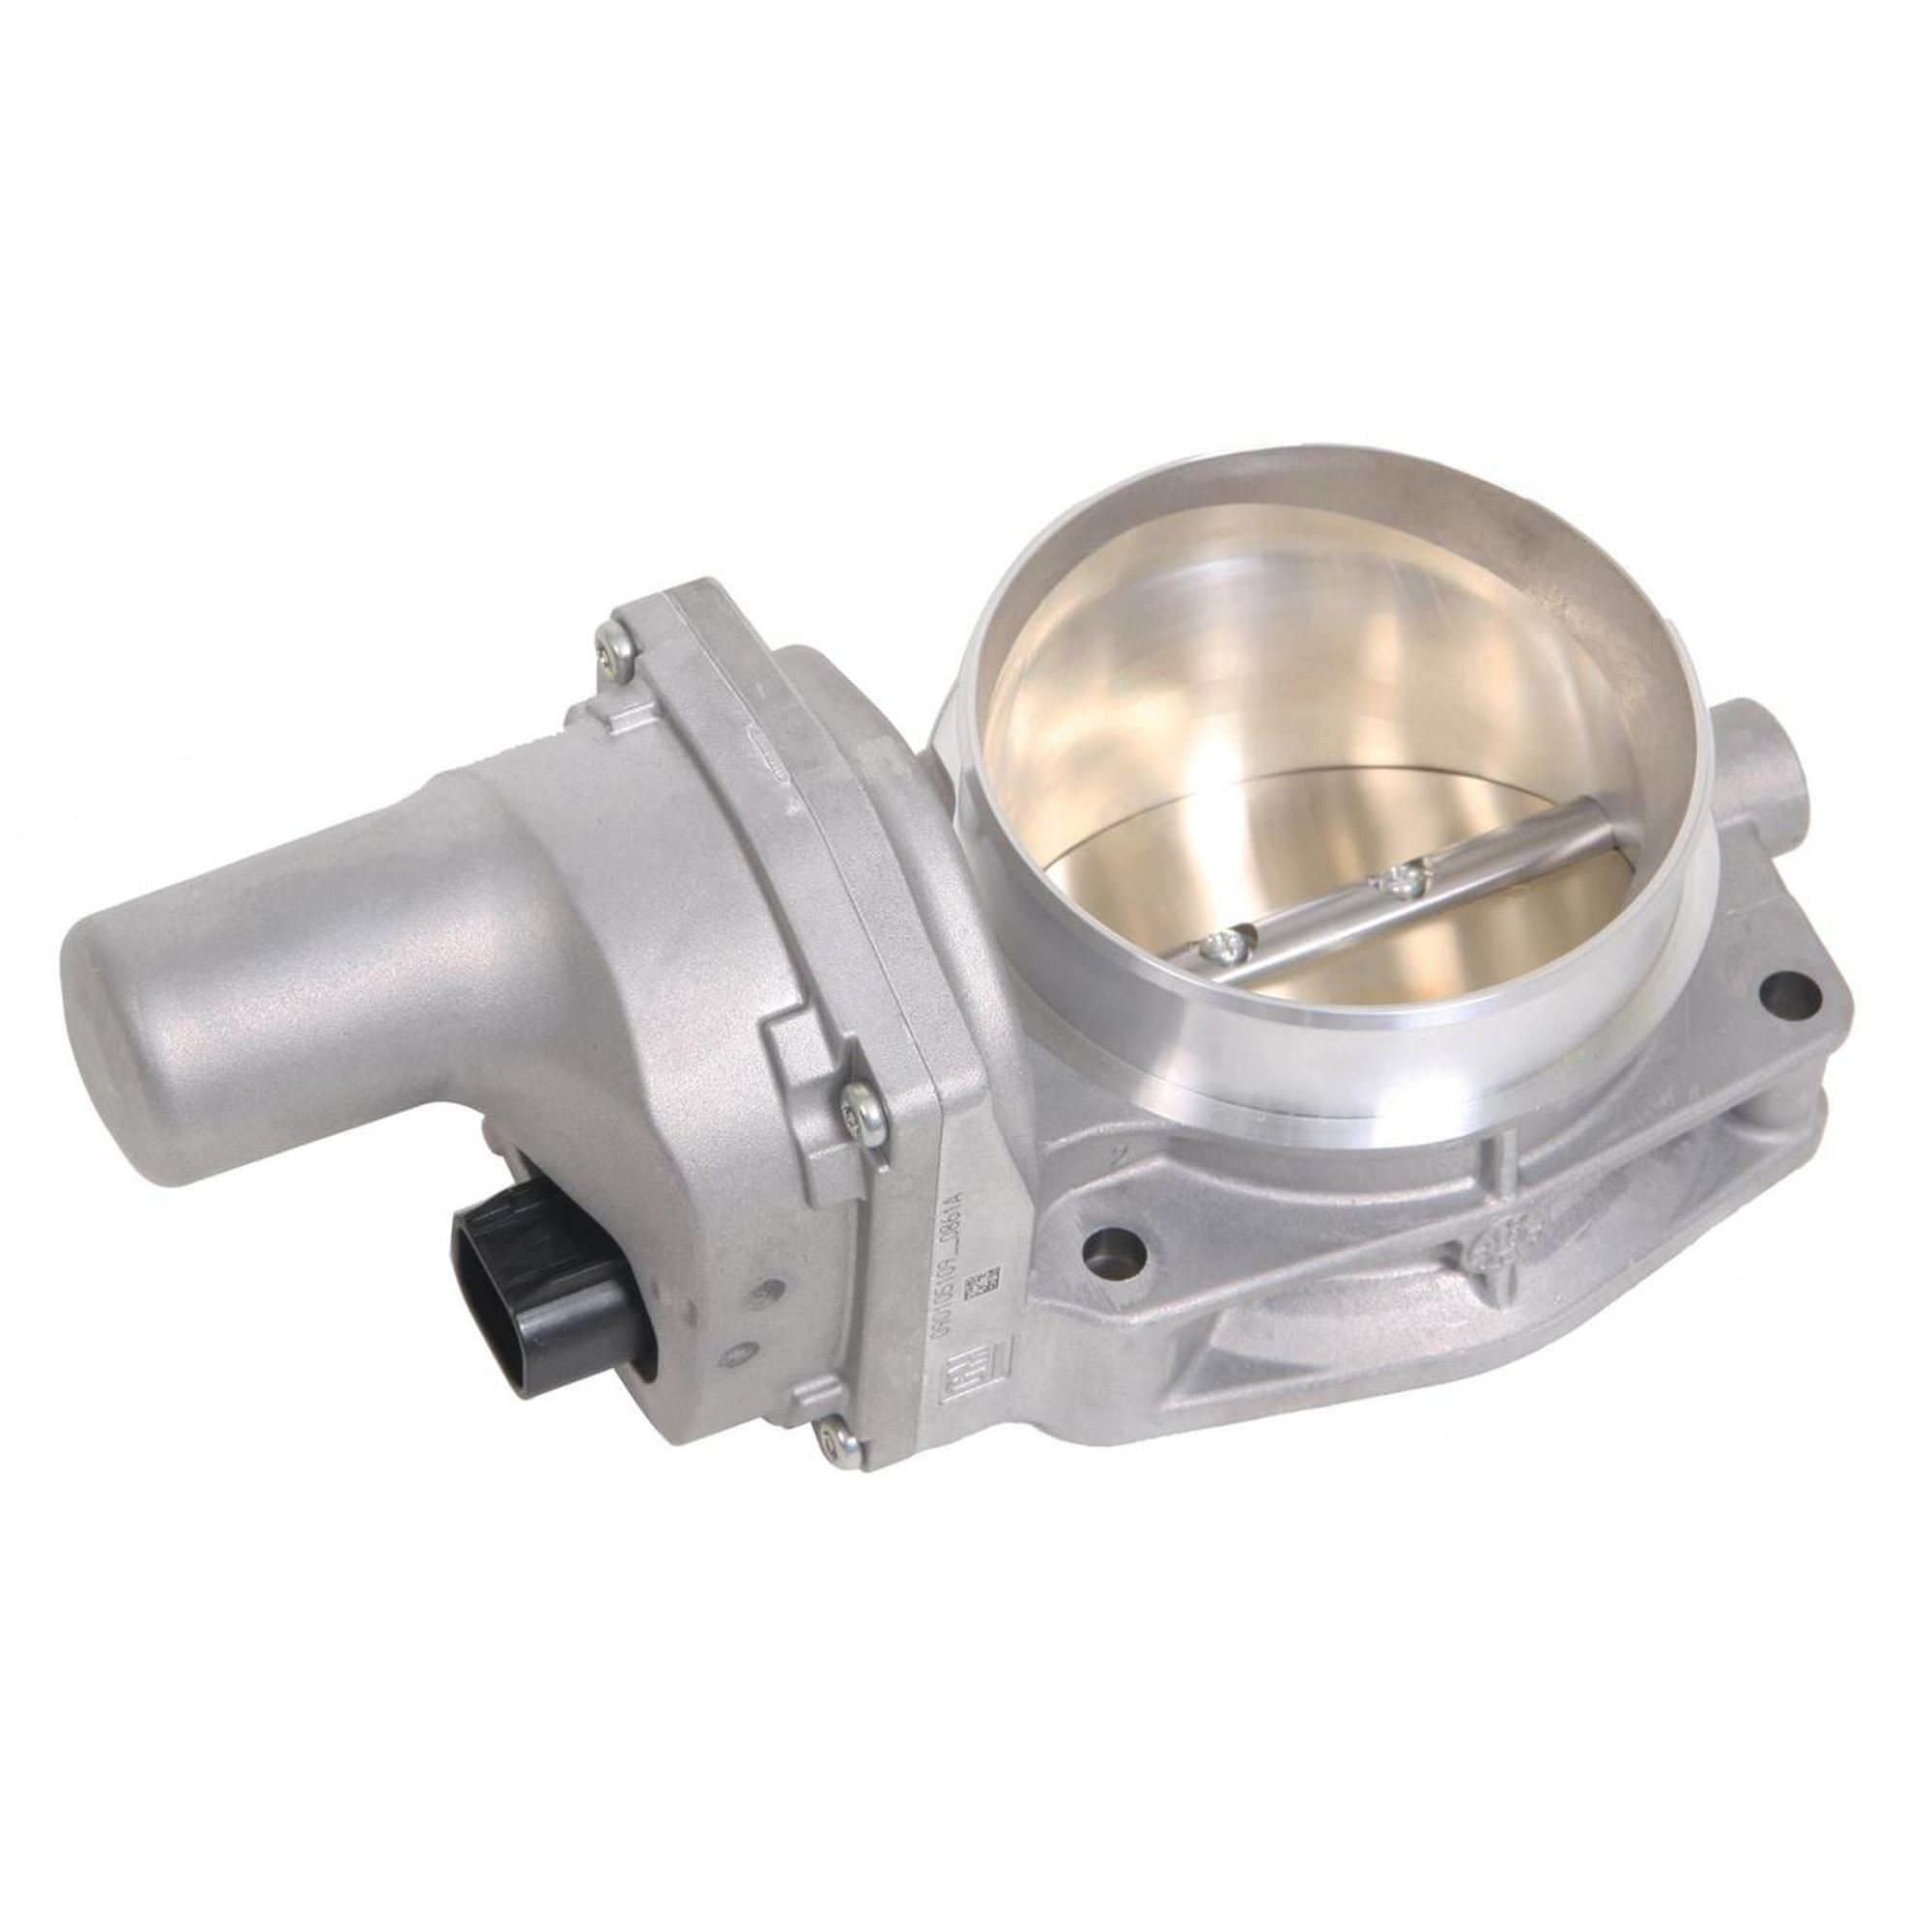 GM OEM 90mm Drive by Wire Throttle Body for LS3 Engines